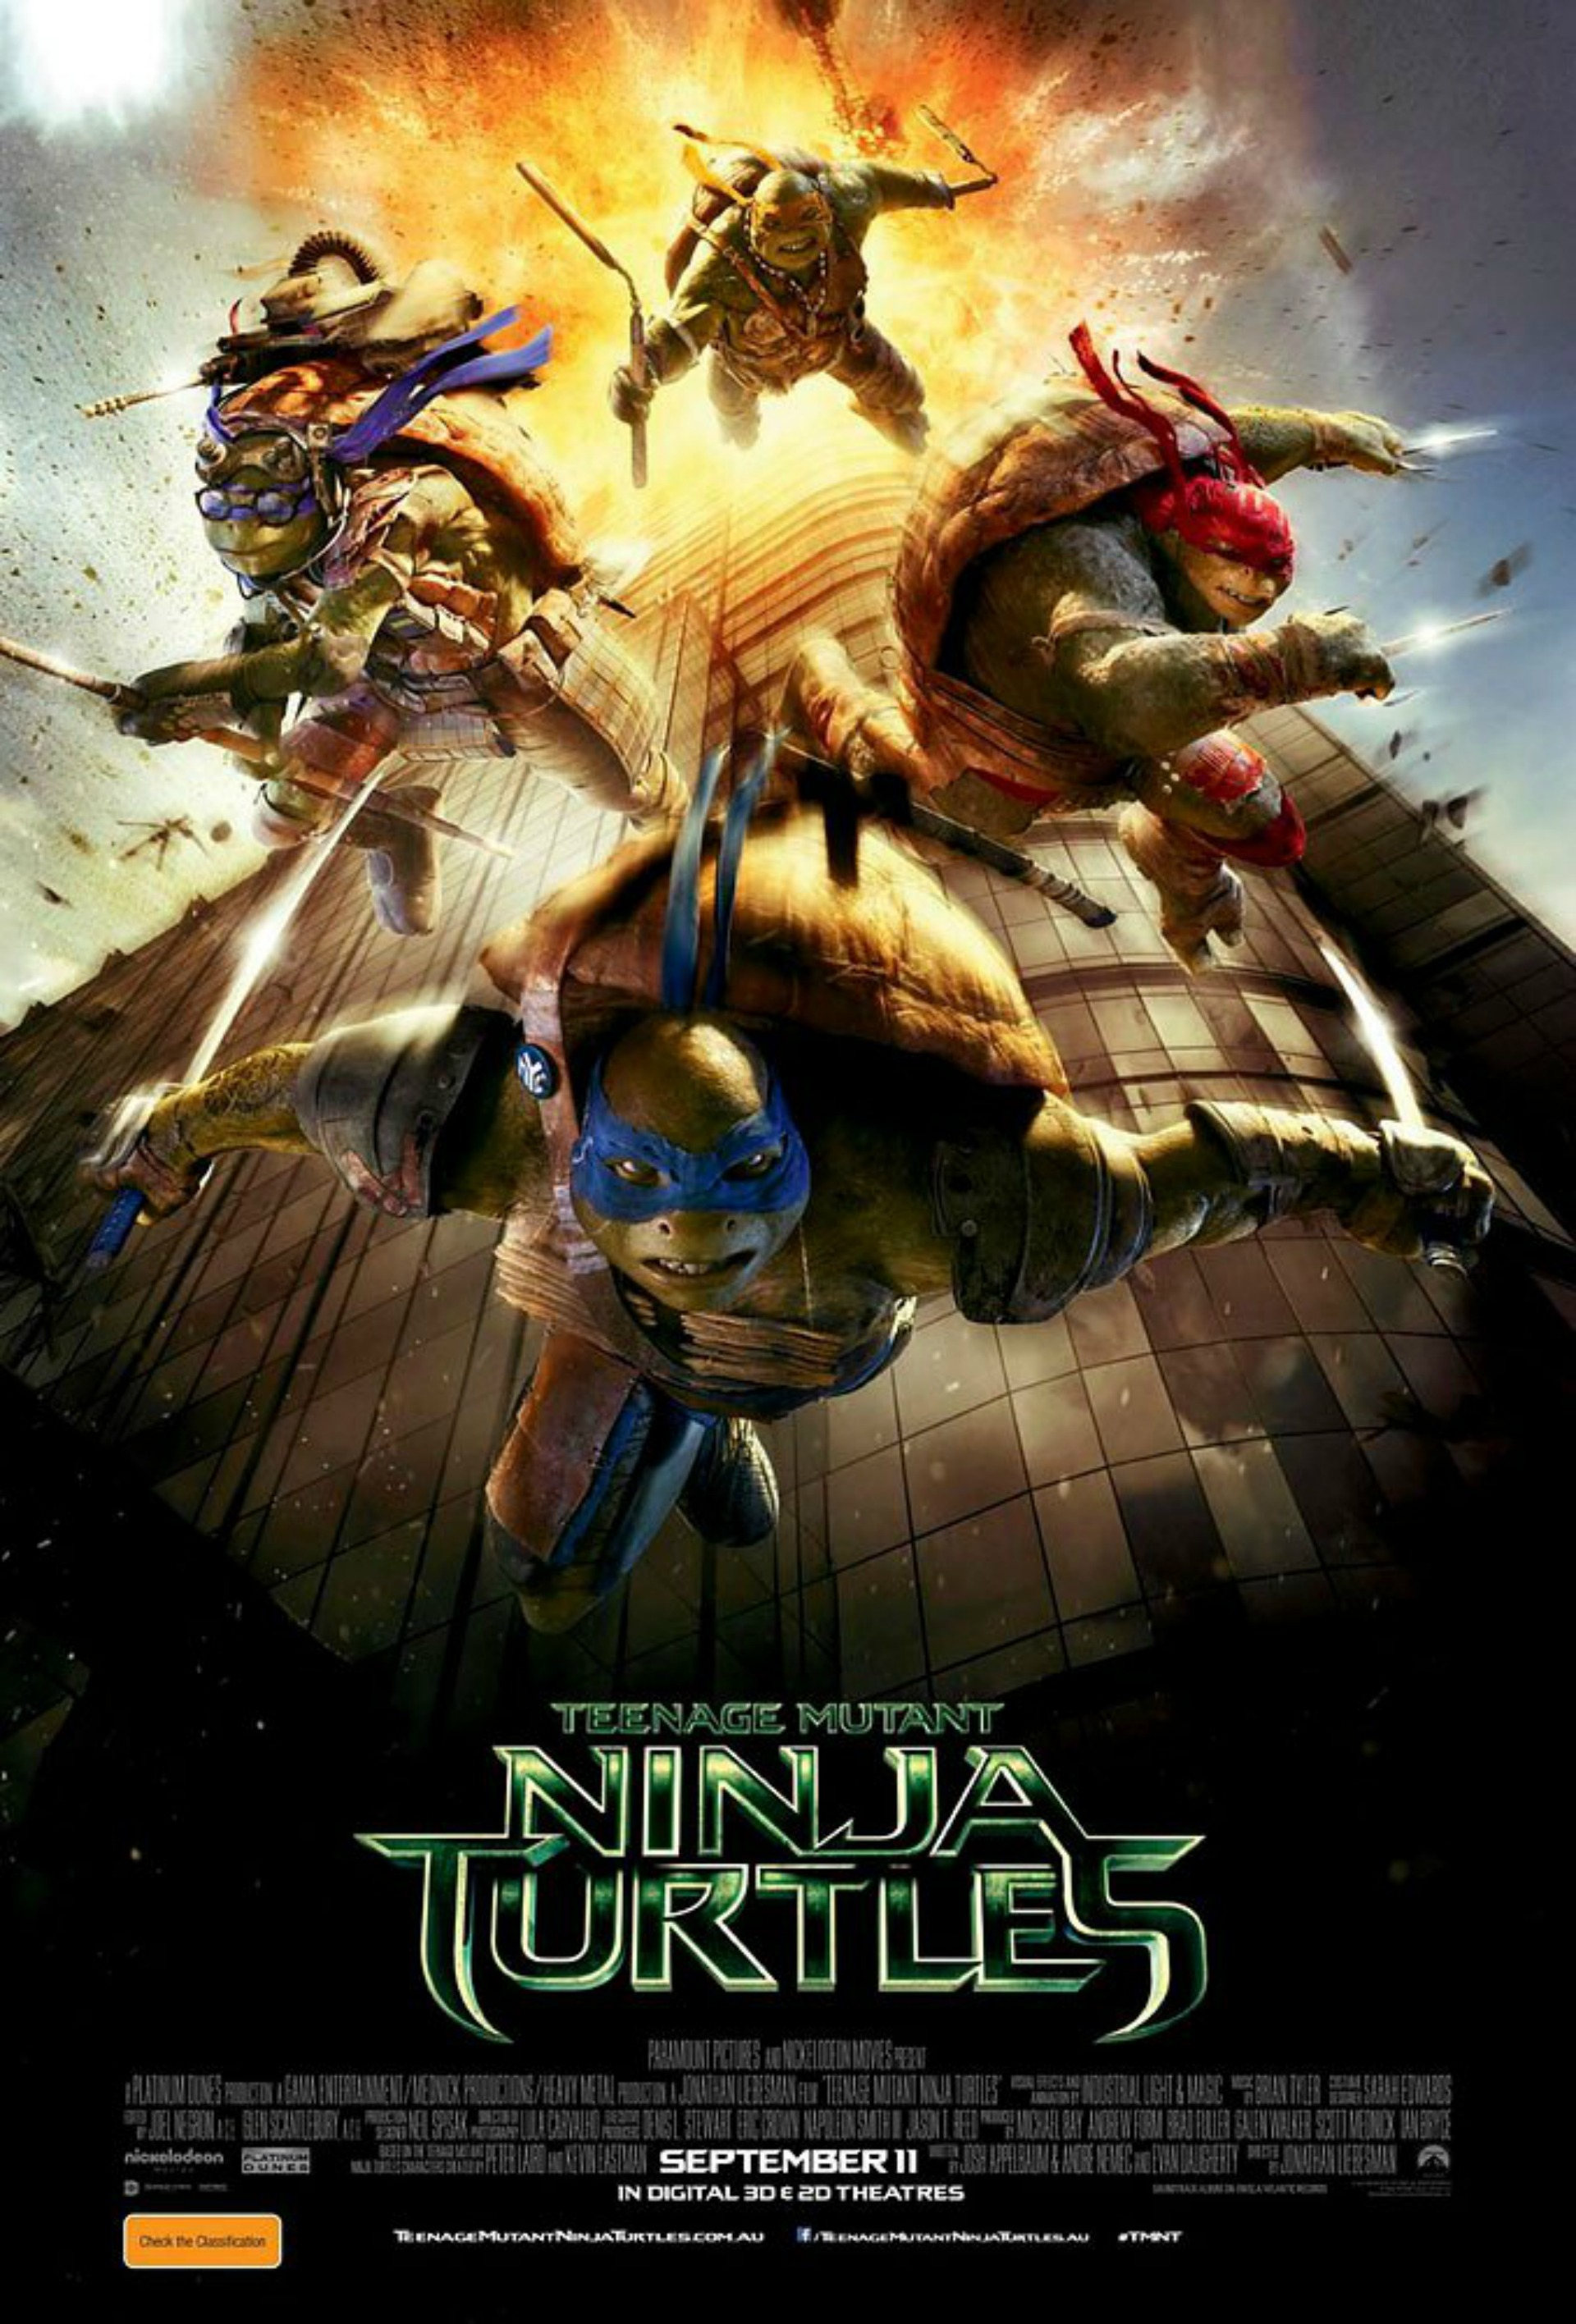 Way too soon, Paramount. Studio stirs controversy over Sept. 11 Ninja Turtles poster